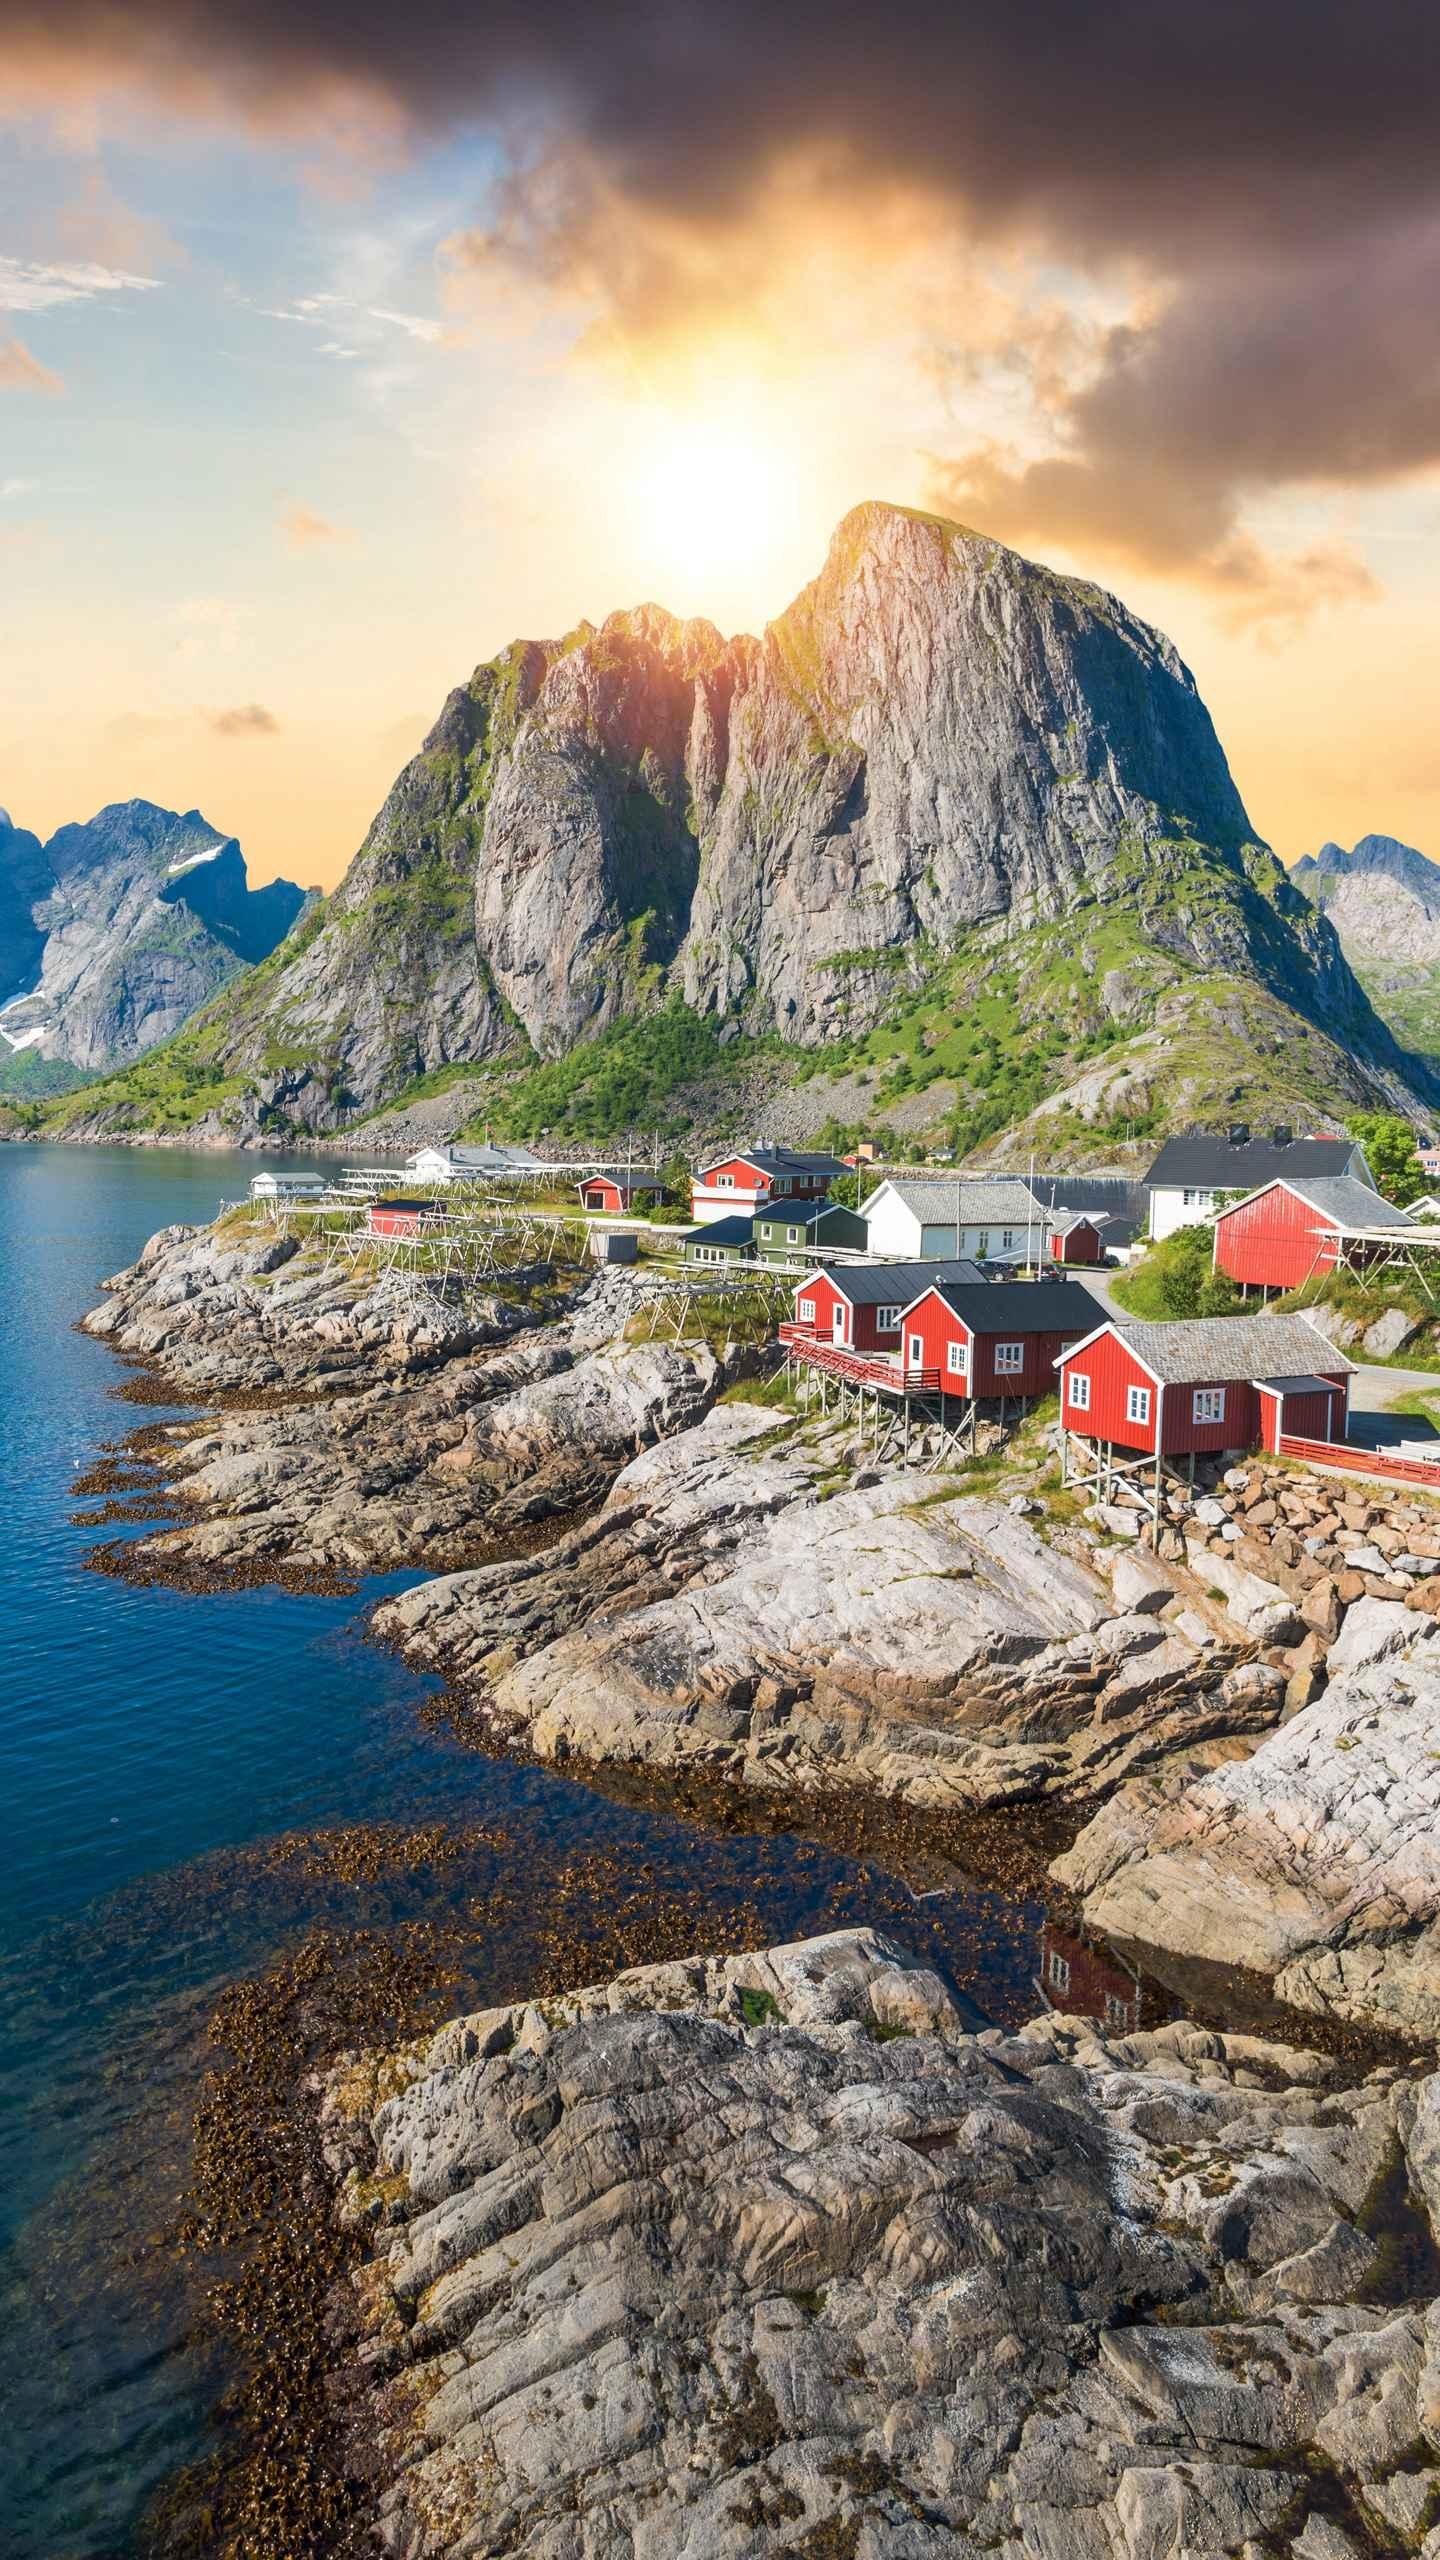 Norway - Lofoten Islands. The fishermen's cabins are built on the sea and have a Nordic character, radiating warm brilliance on this Arctic island. Girls trip ideas; Tourism; Adventure travel; Wanderlust;